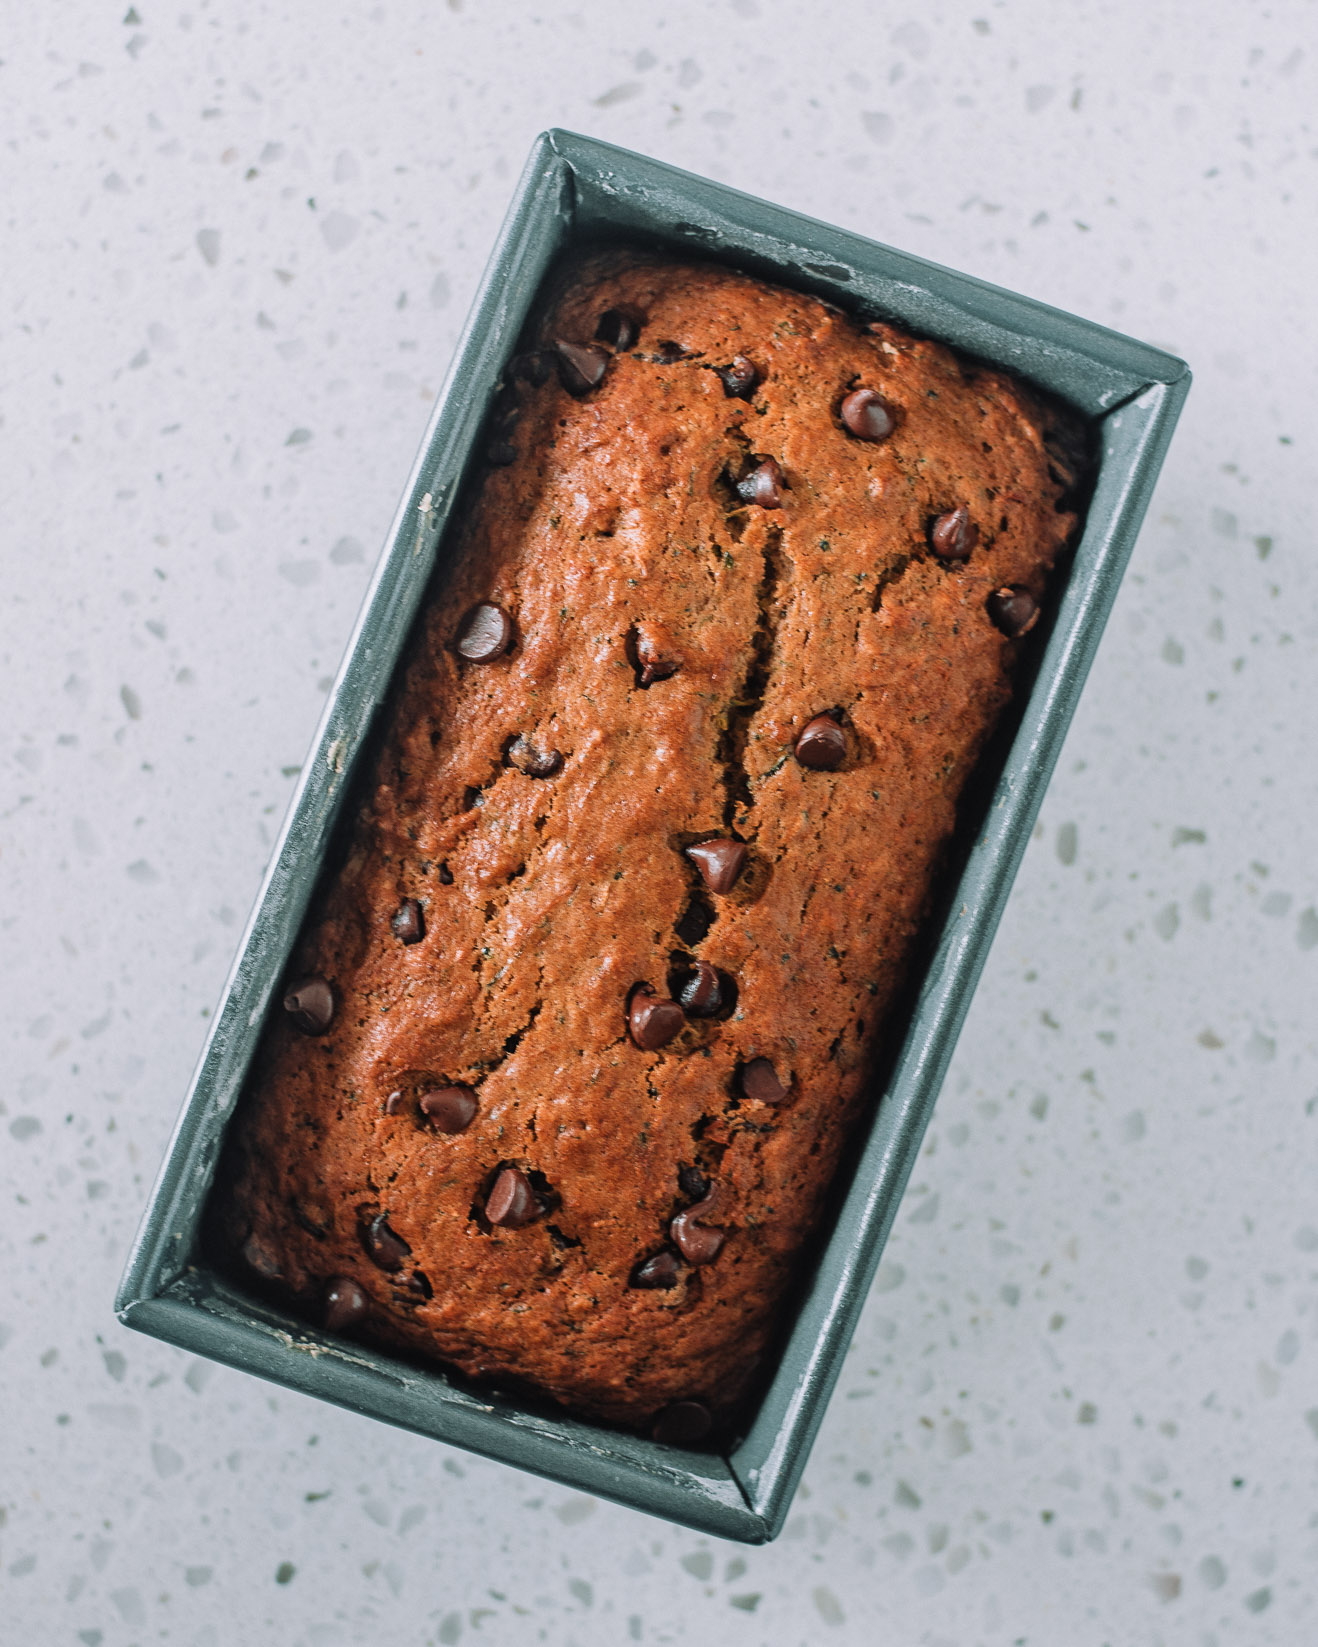 Chocolate Chip Zucchini Bread by Mash and Spread- Jasmin Foster, RD, LD.